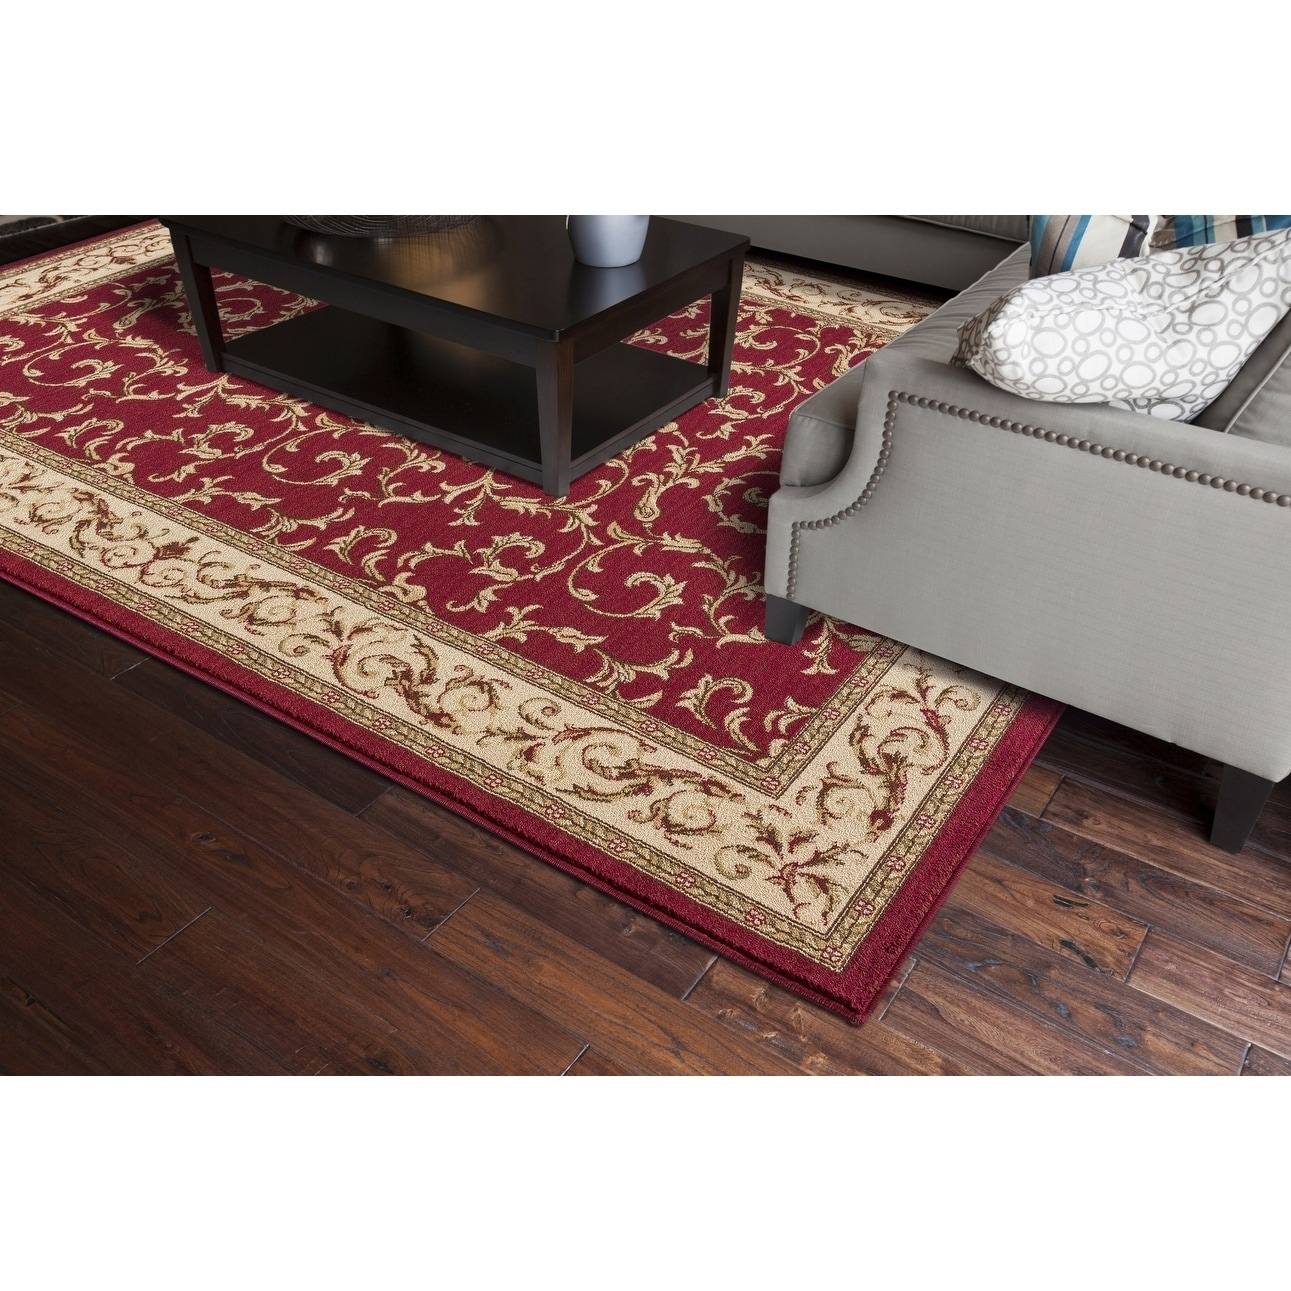 Shop Concord Global Jewel Ivy Area Rug   Free Shipping Today    Overstock.com   12035807